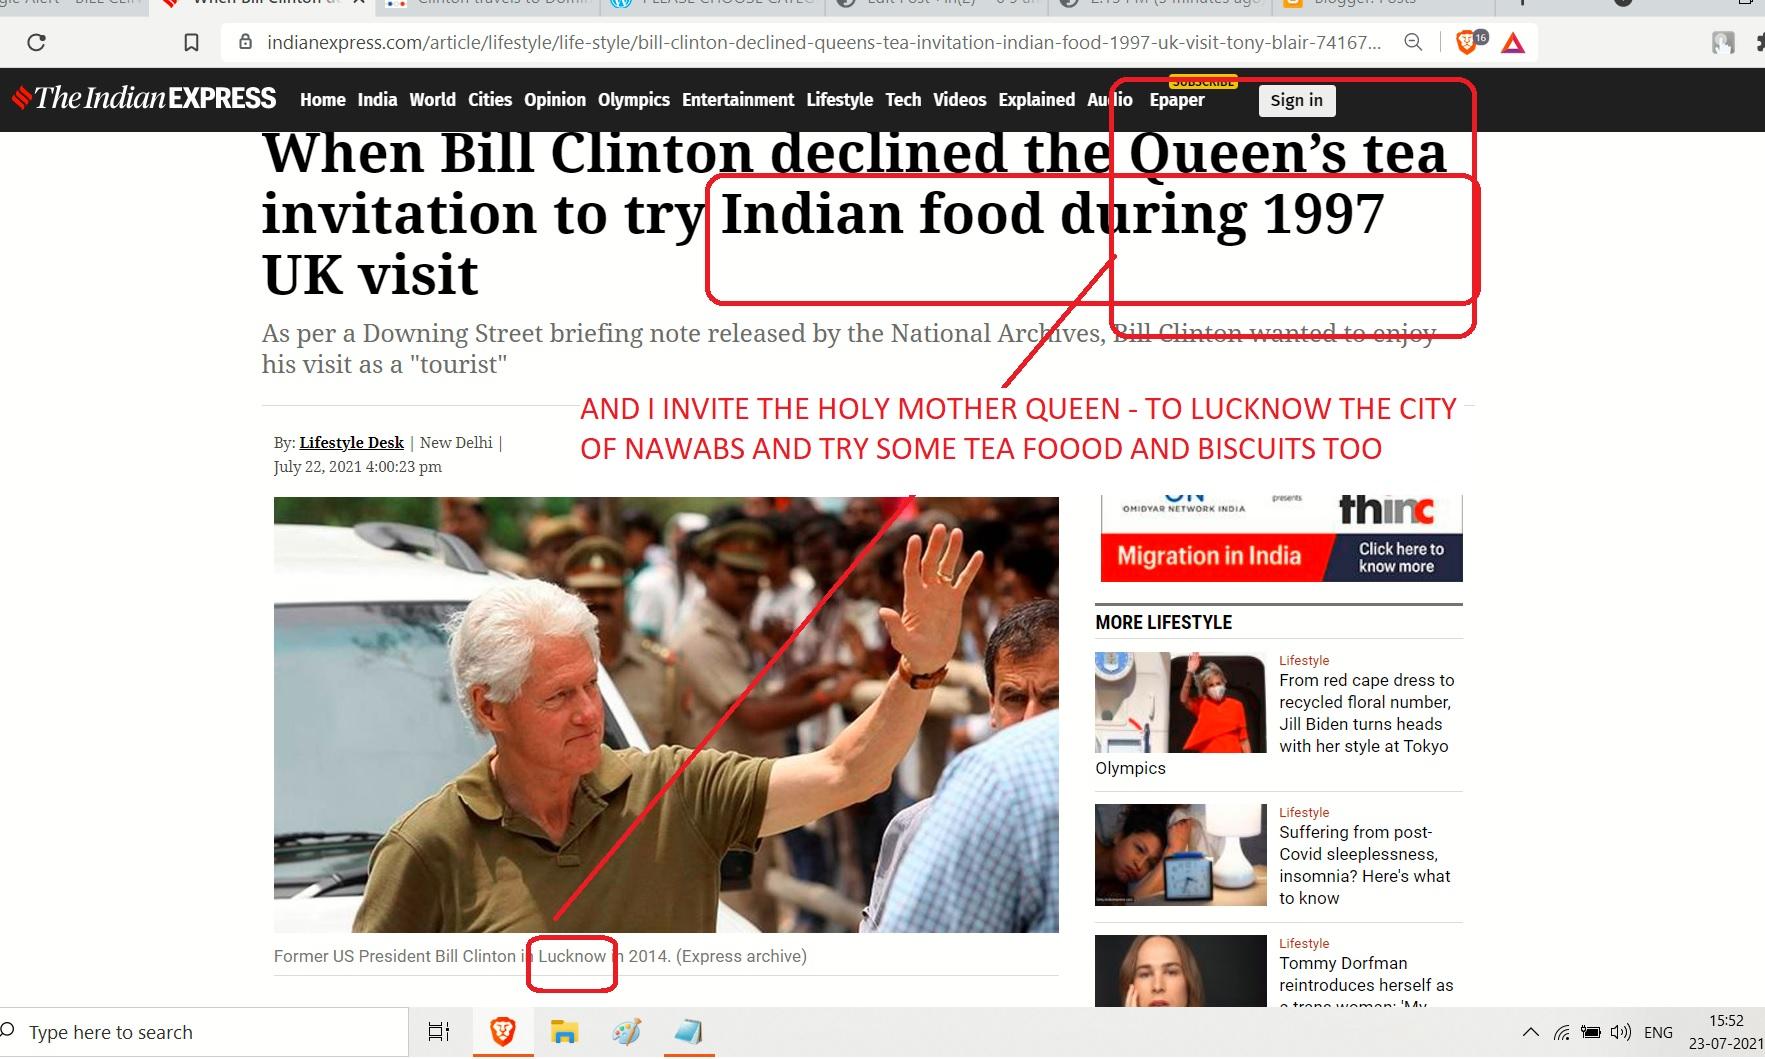 BILL CLINTON FOOD - LUCKNOW AND LONDON AND BUKINGHAM AND THE HOLY MOTEHR QUEEN TRIP 000